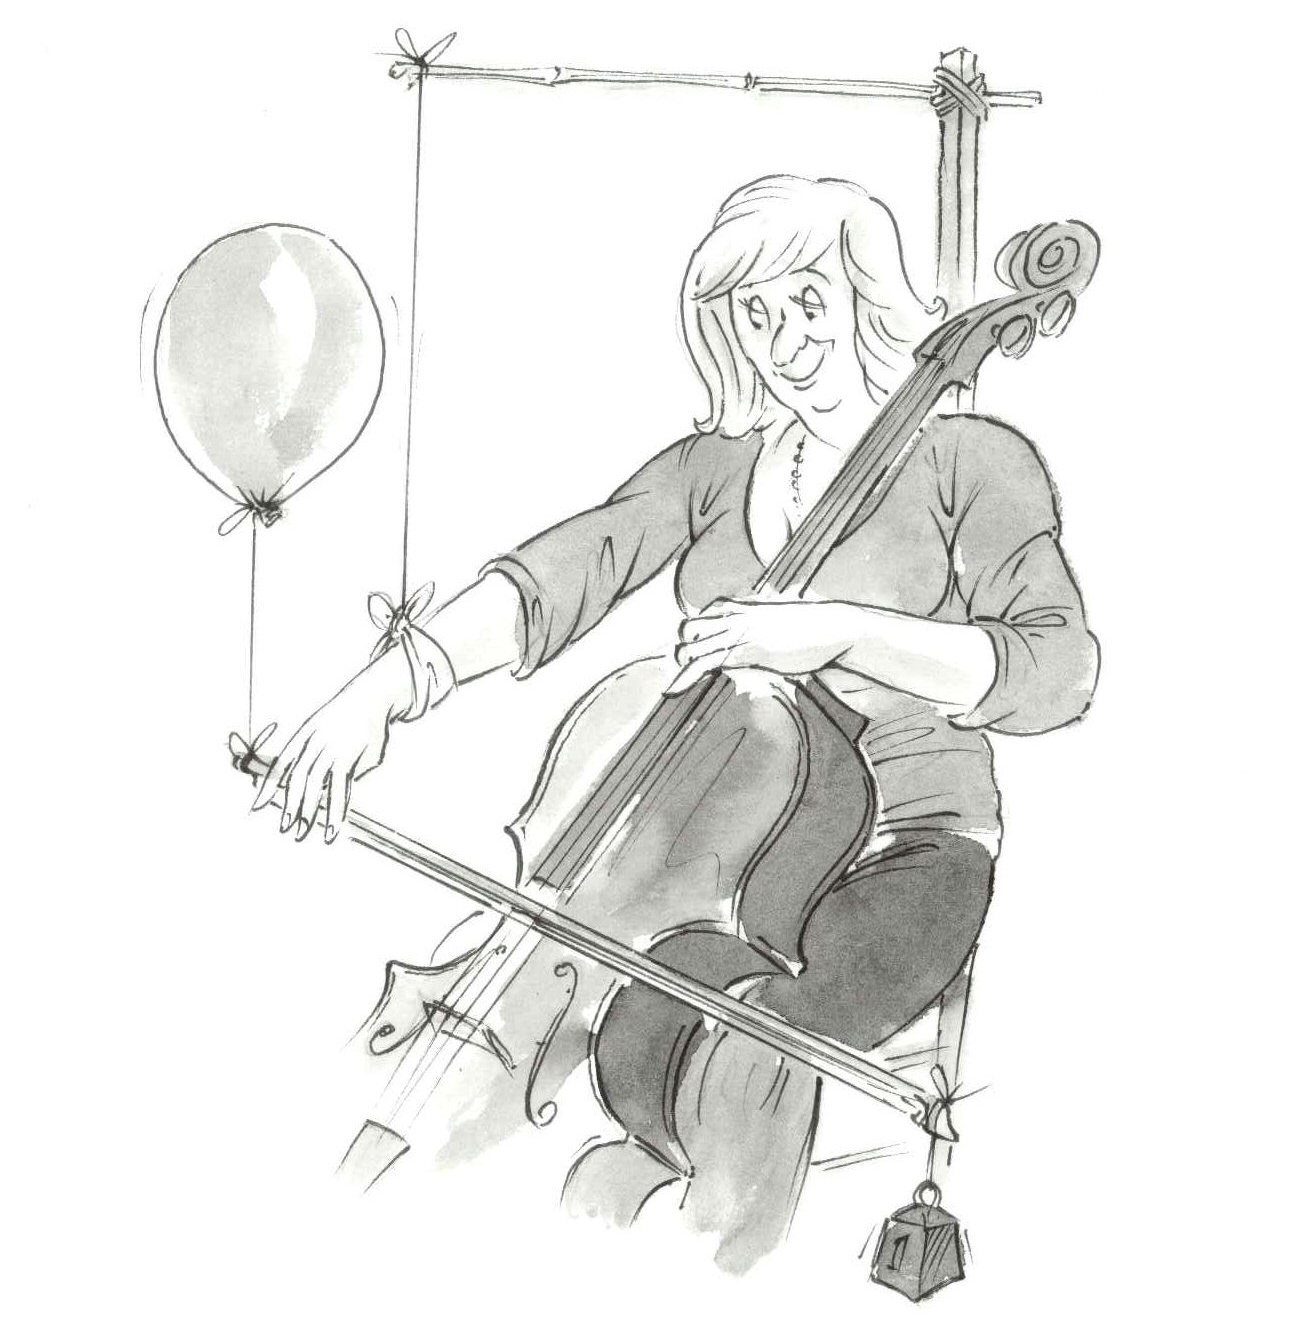 Cartoon of a lady playing with a balloon attached to her bow and her arm propped up